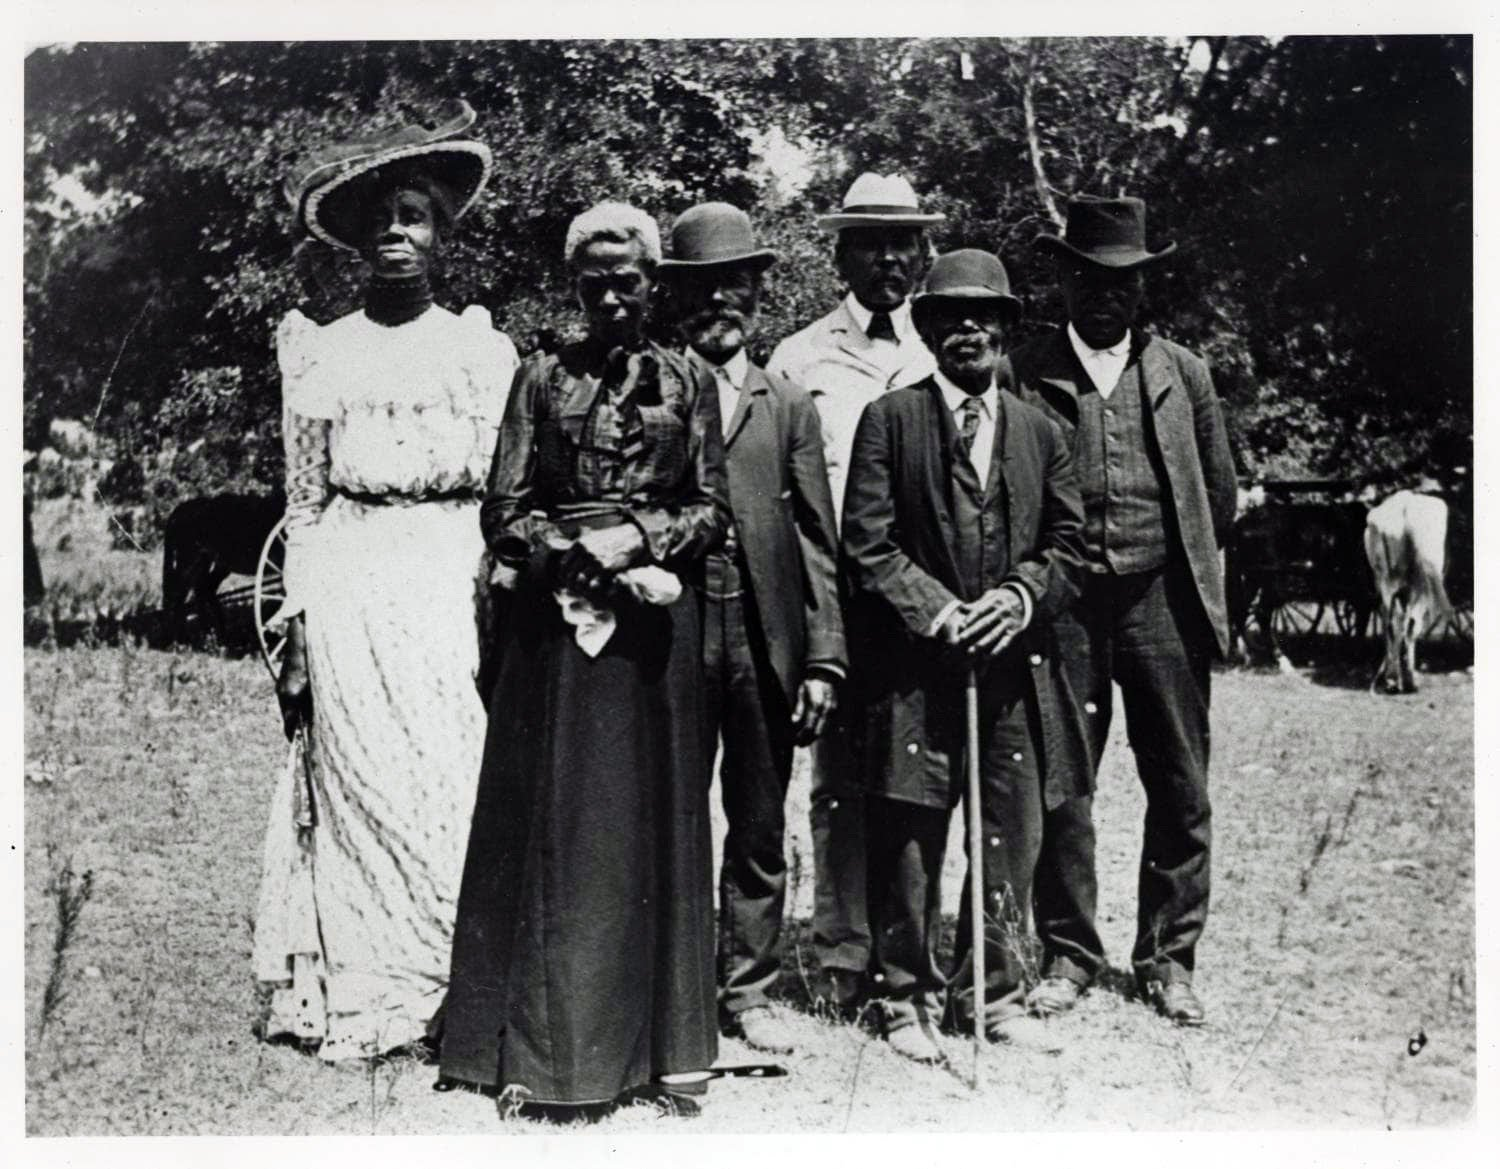 """A group of people celebrate Emancipation Day on June 19, 1900, held in """"East Woods"""" on East 24th Street in Austin, Texas. Photo courtesy of Mrs. Charles Stephenson (Grace Murray) via the Austin History Center, Austin Public Library/Creative Commons"""